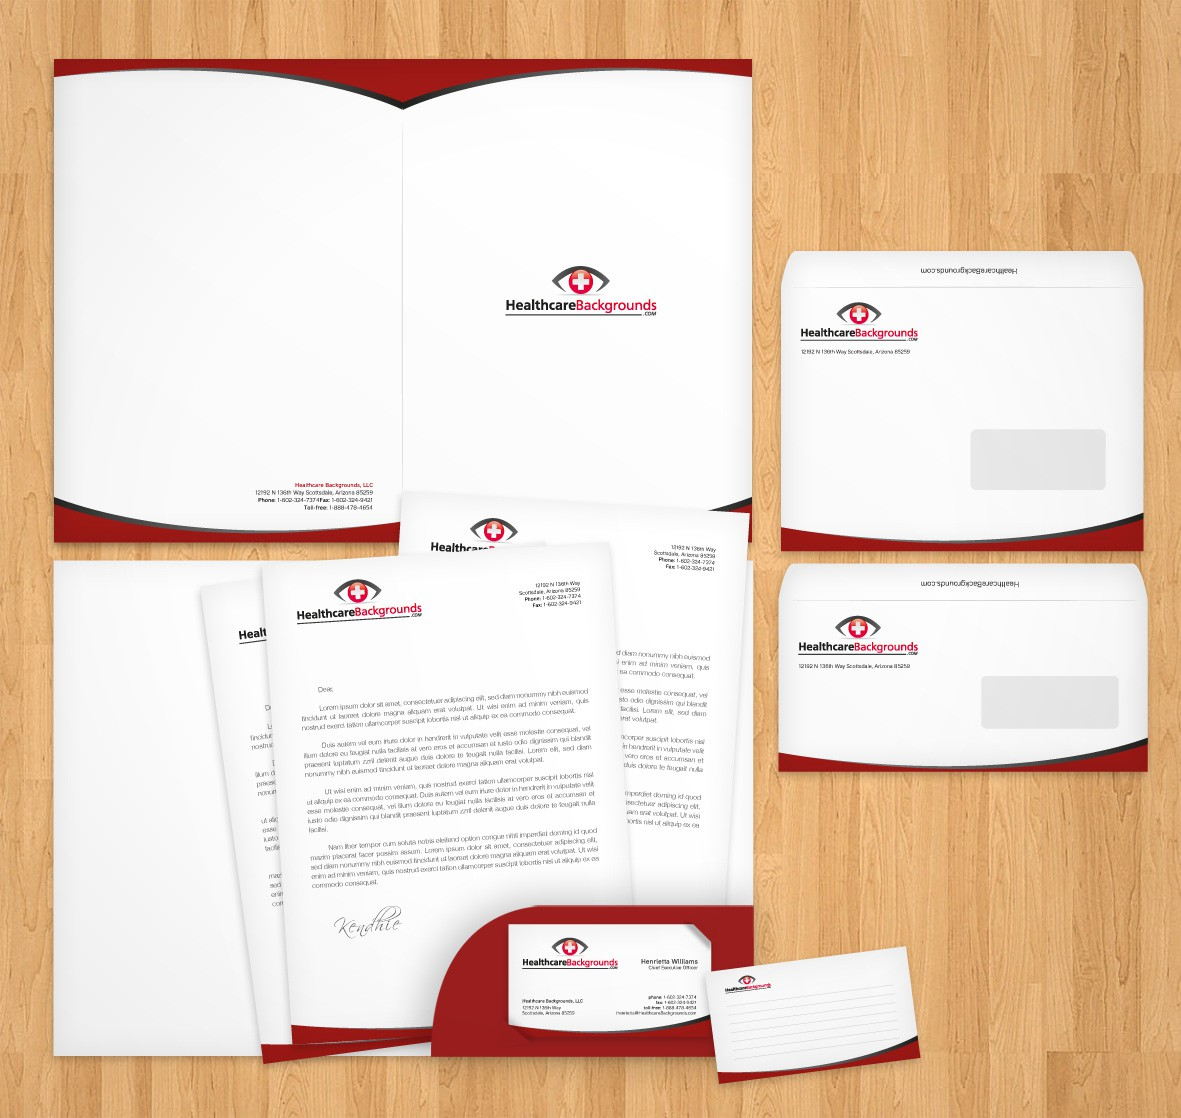 Create the next stationery for Healthcare Backgrounds LLC